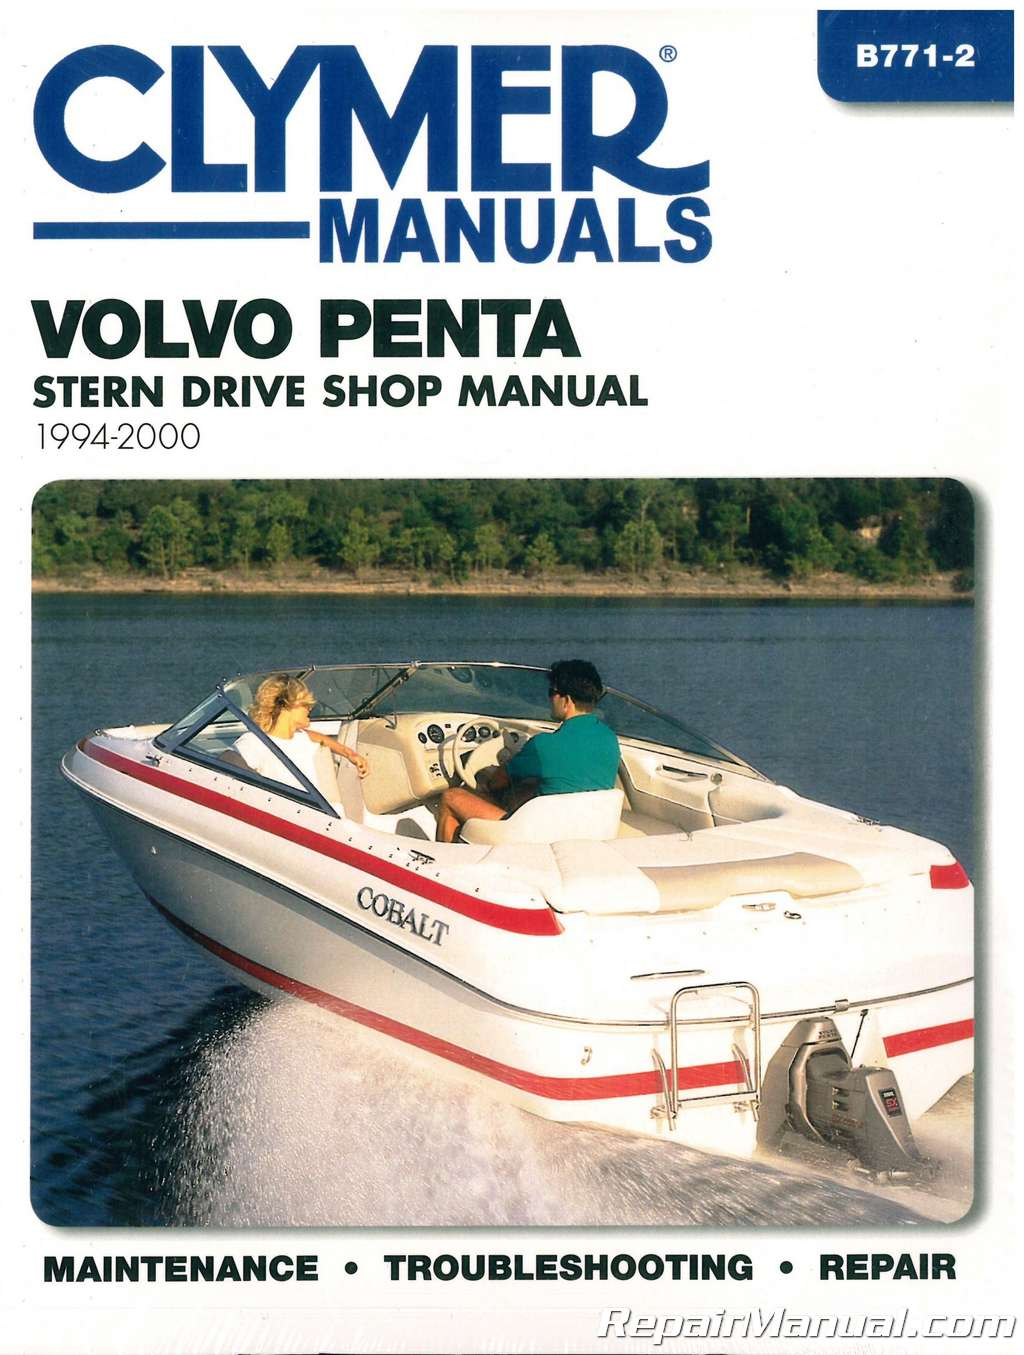 Clymer 1994-2000 Volvo Penta Stern Drive Boat Engine Repair Manual